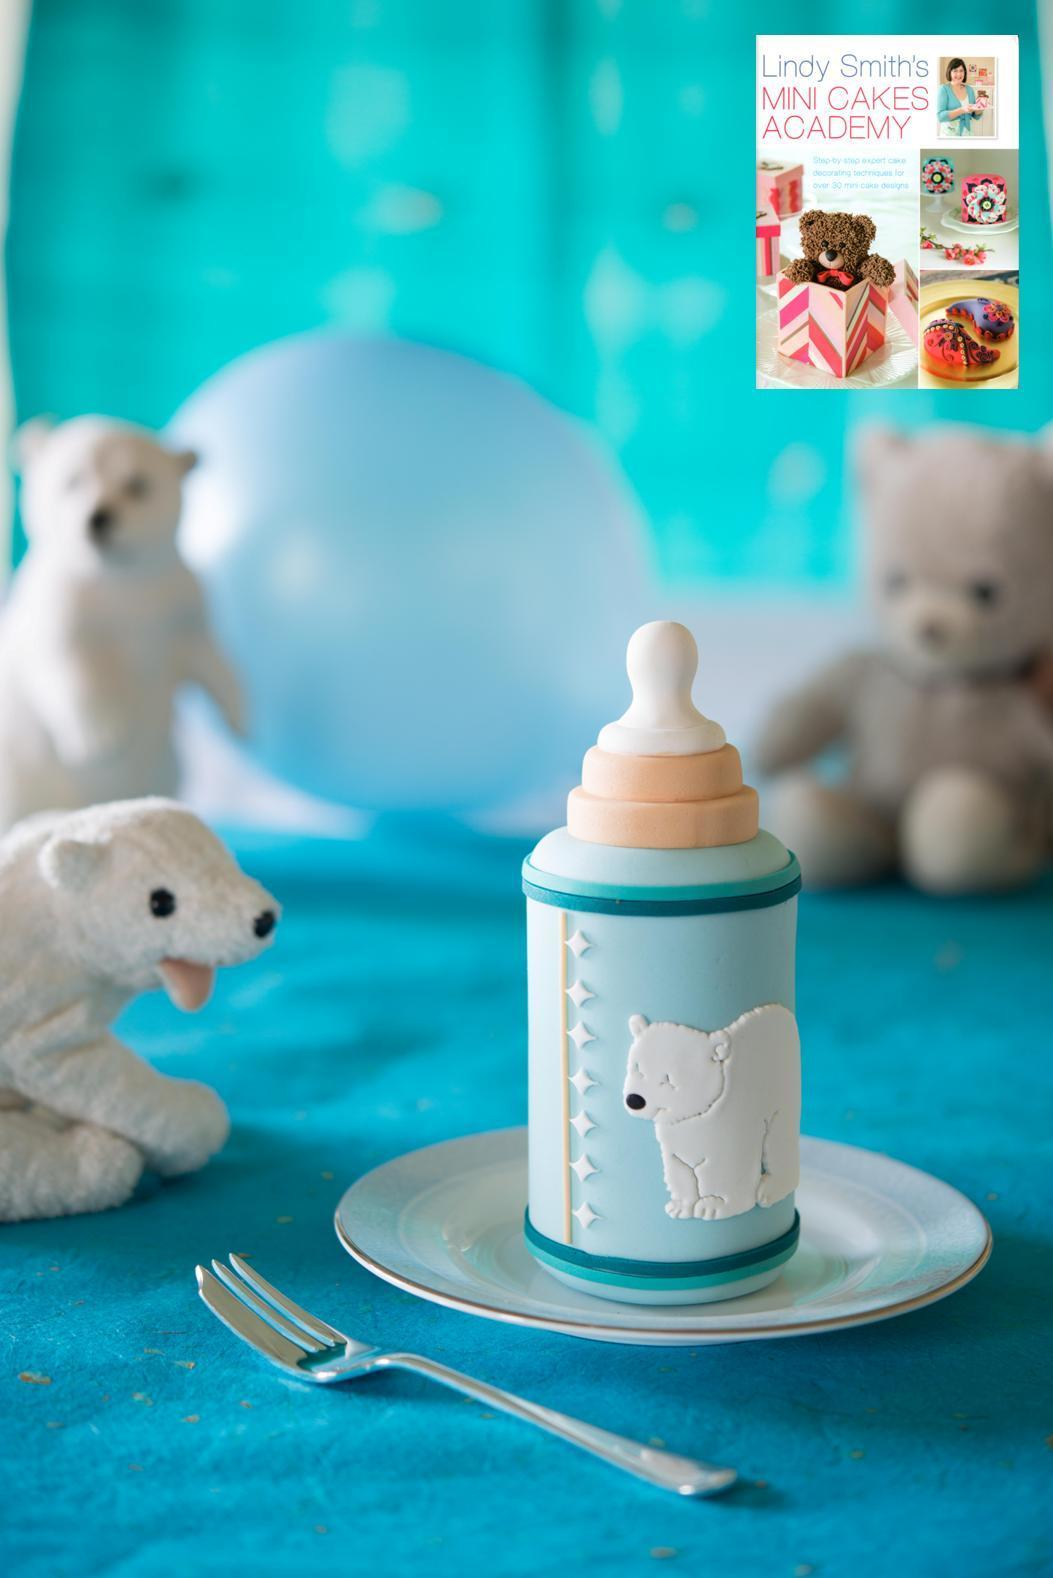 'Bottled with love' mini baby bottle cake from Lindy Smith's mini cakes academy book